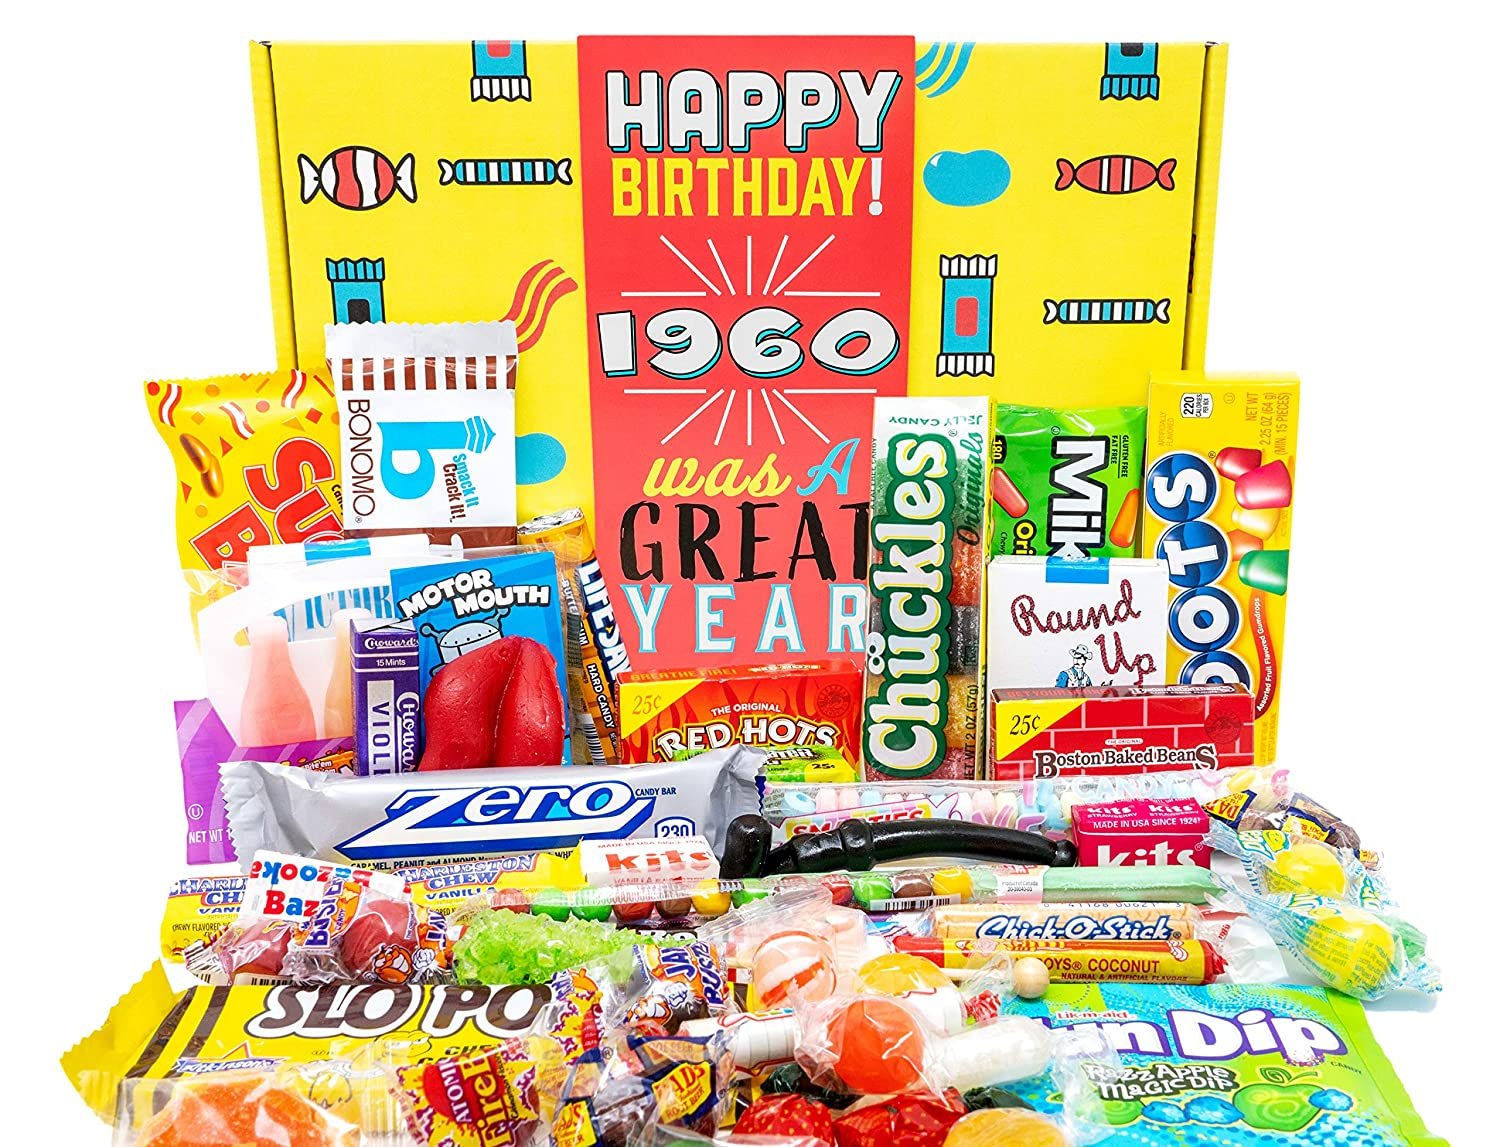 Woodstock Candy - 1960 61st Birthday Candy Decade Box - Ultimate Variety 61st Birthday Gift Box Assortment Basket for Man or Woman Turning 61 Years Old - Retro Candies for Him or Her Born 1960